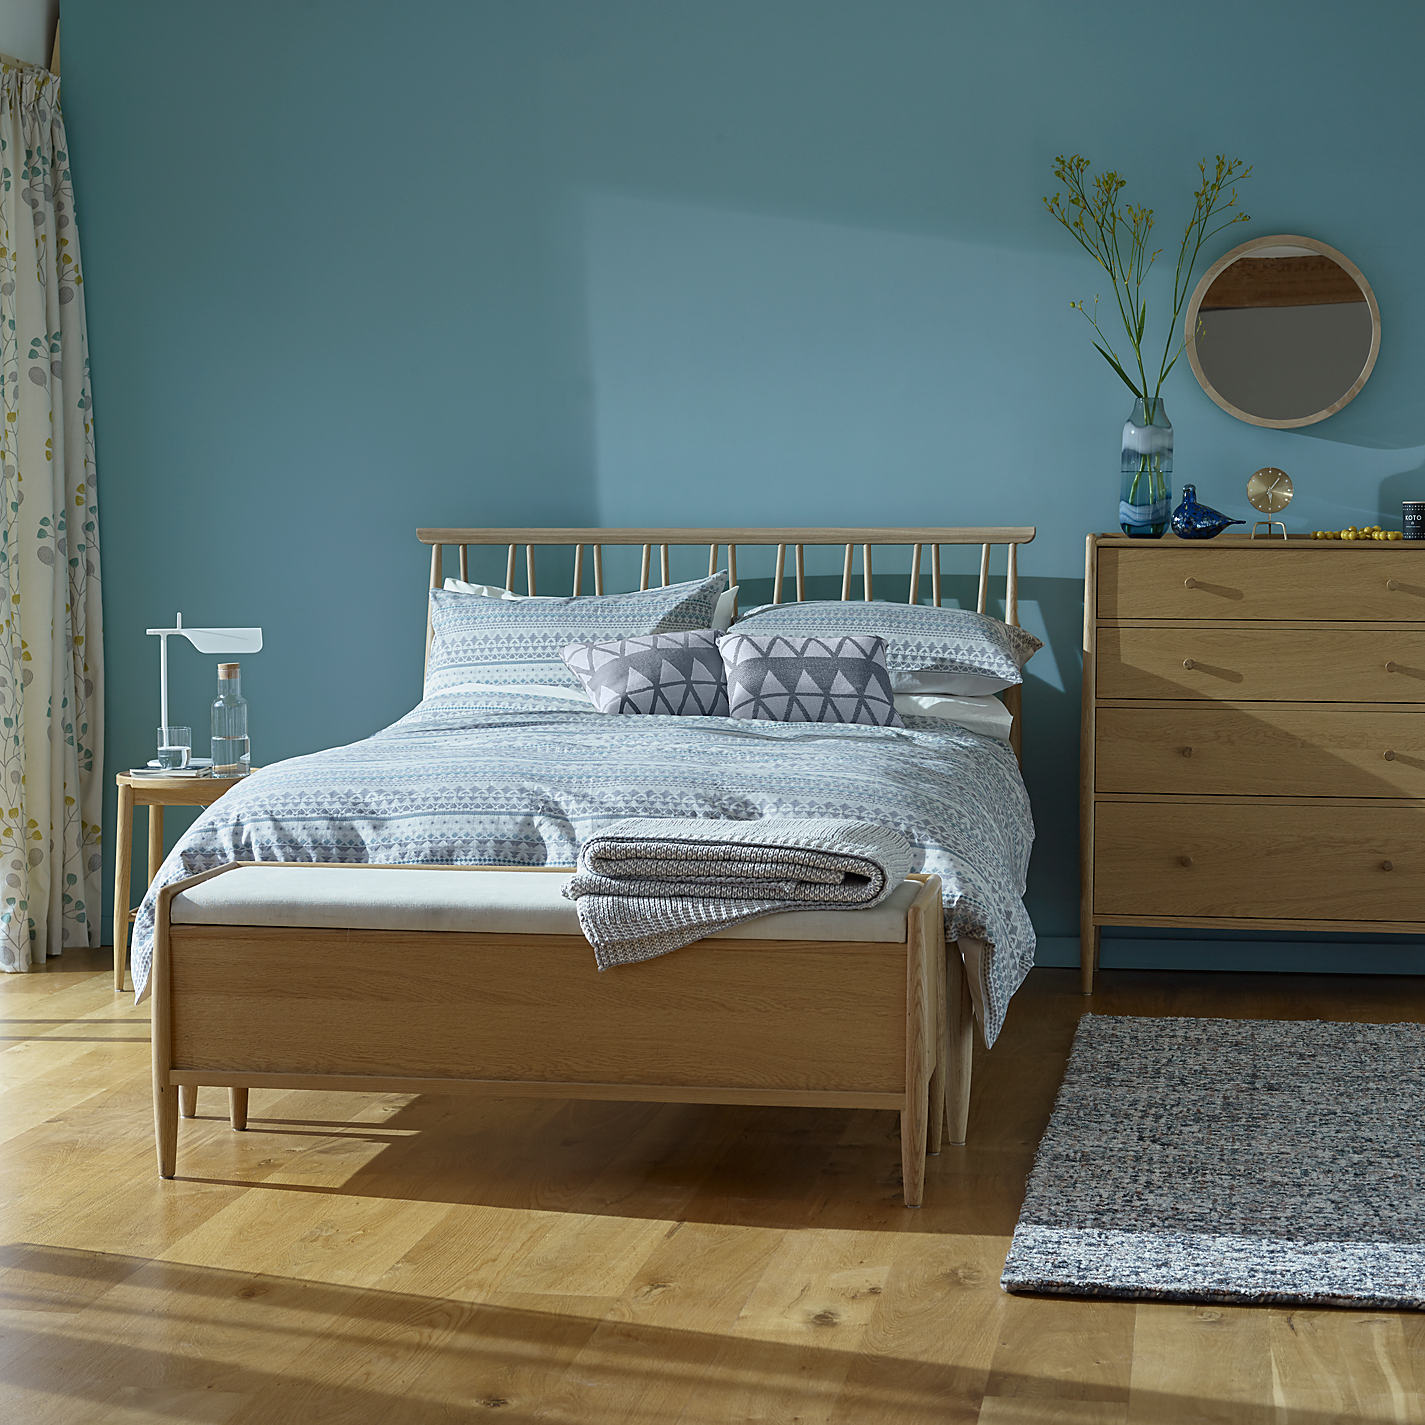 Ercol bedroom furniture john lewis for Bedroom inspiration john lewis